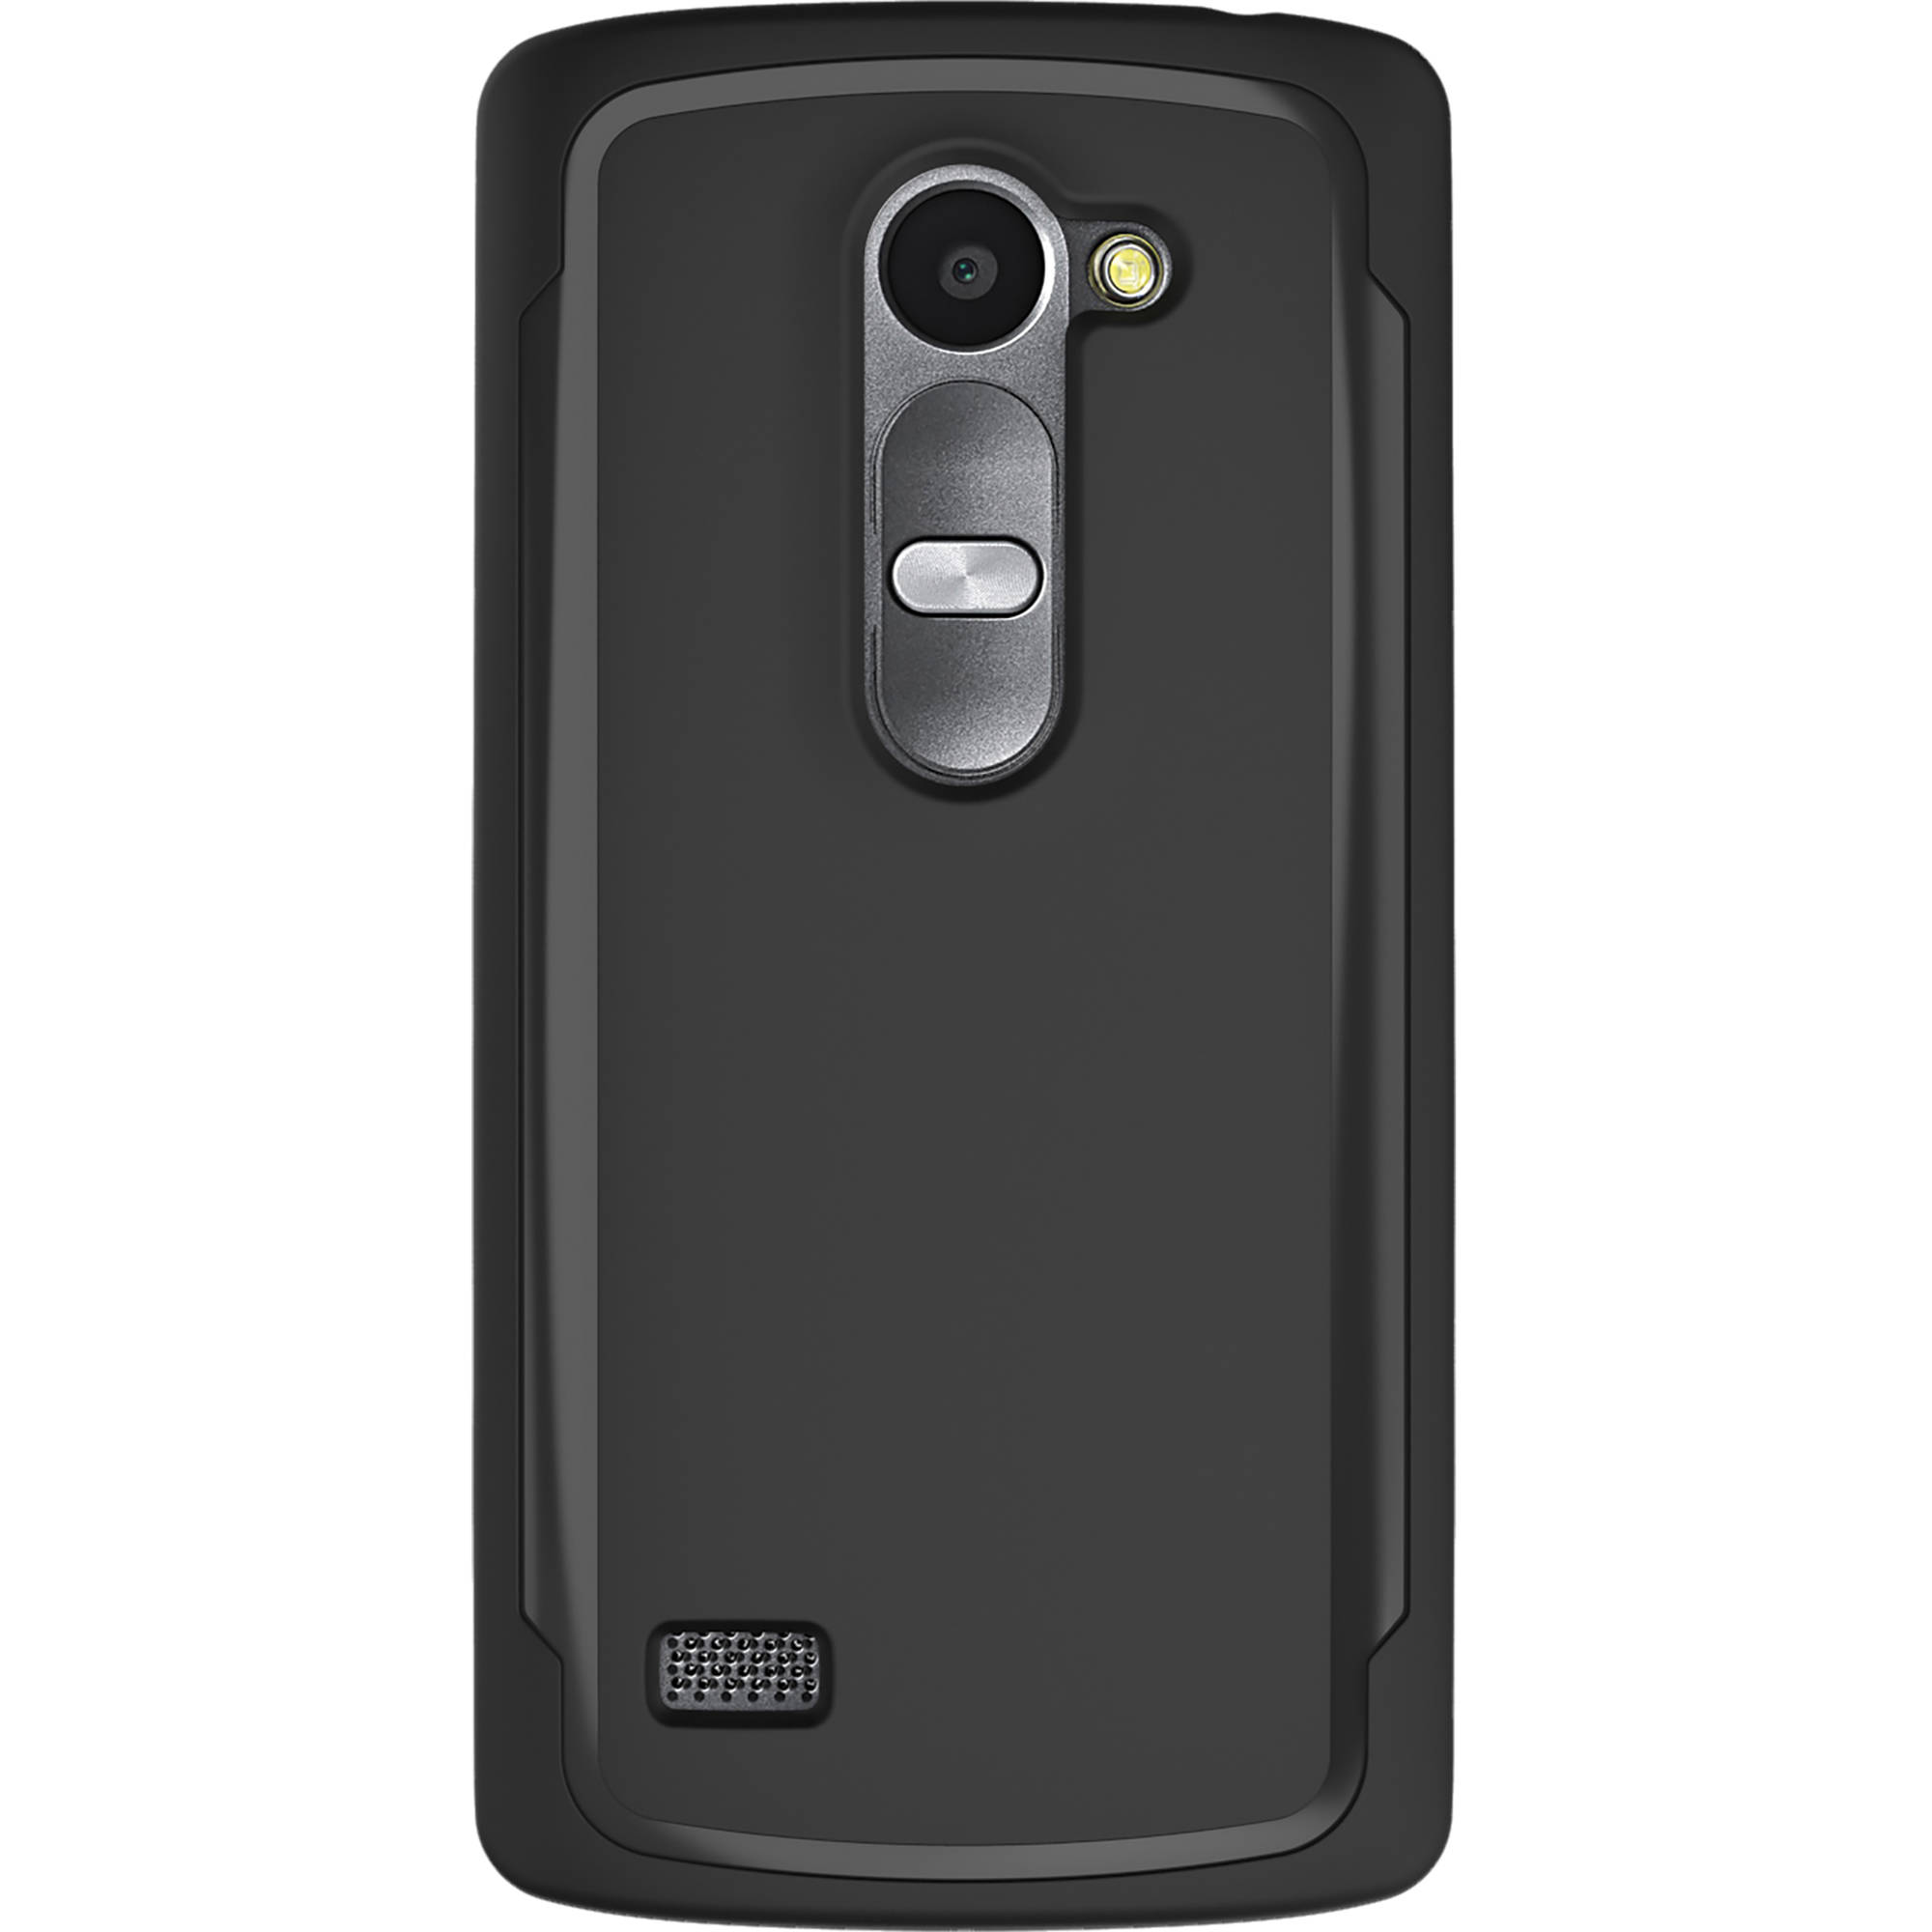 straight talk gel case for lg power smartphone walmart com